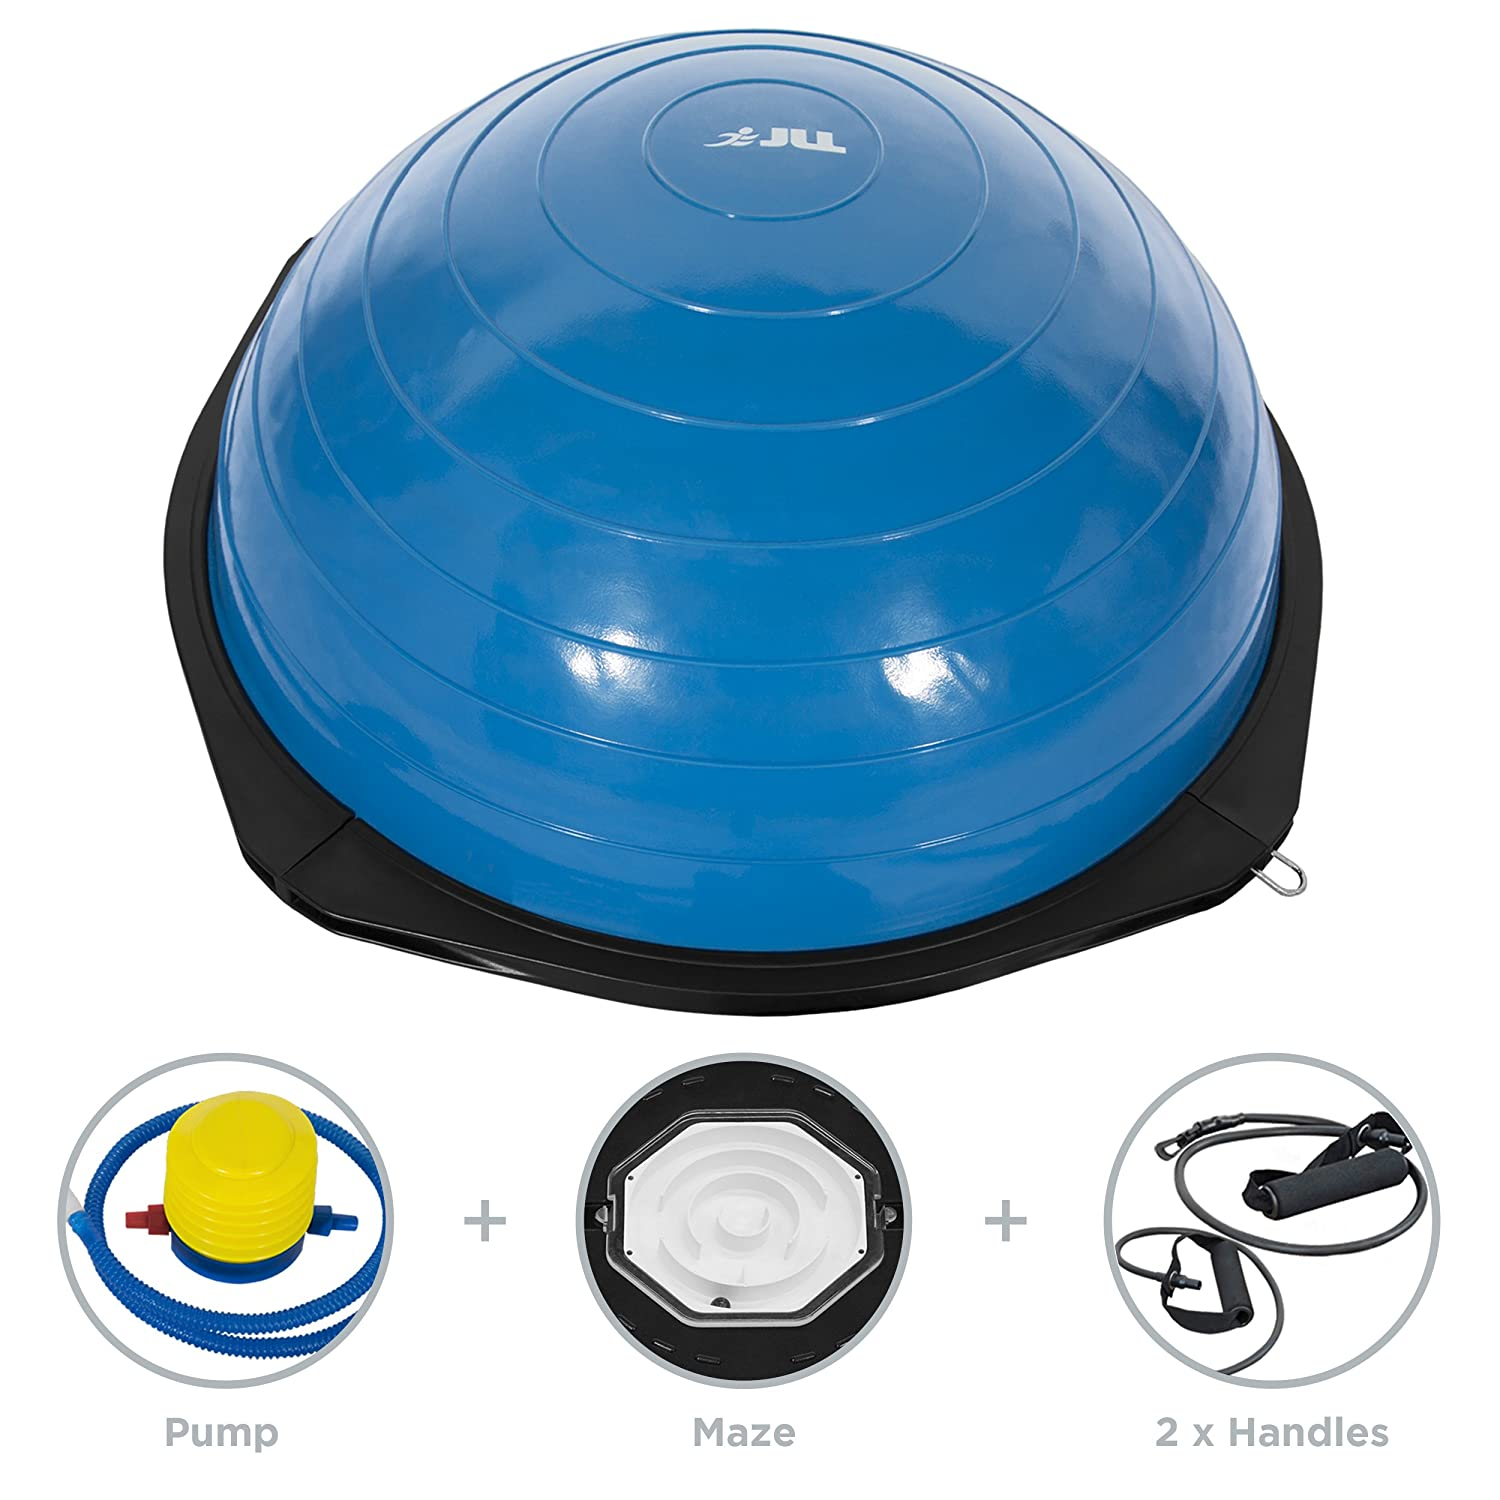 Bosu Ball Air Pump: Holiday Gifts For Self-Improvement: Top 20 Workout